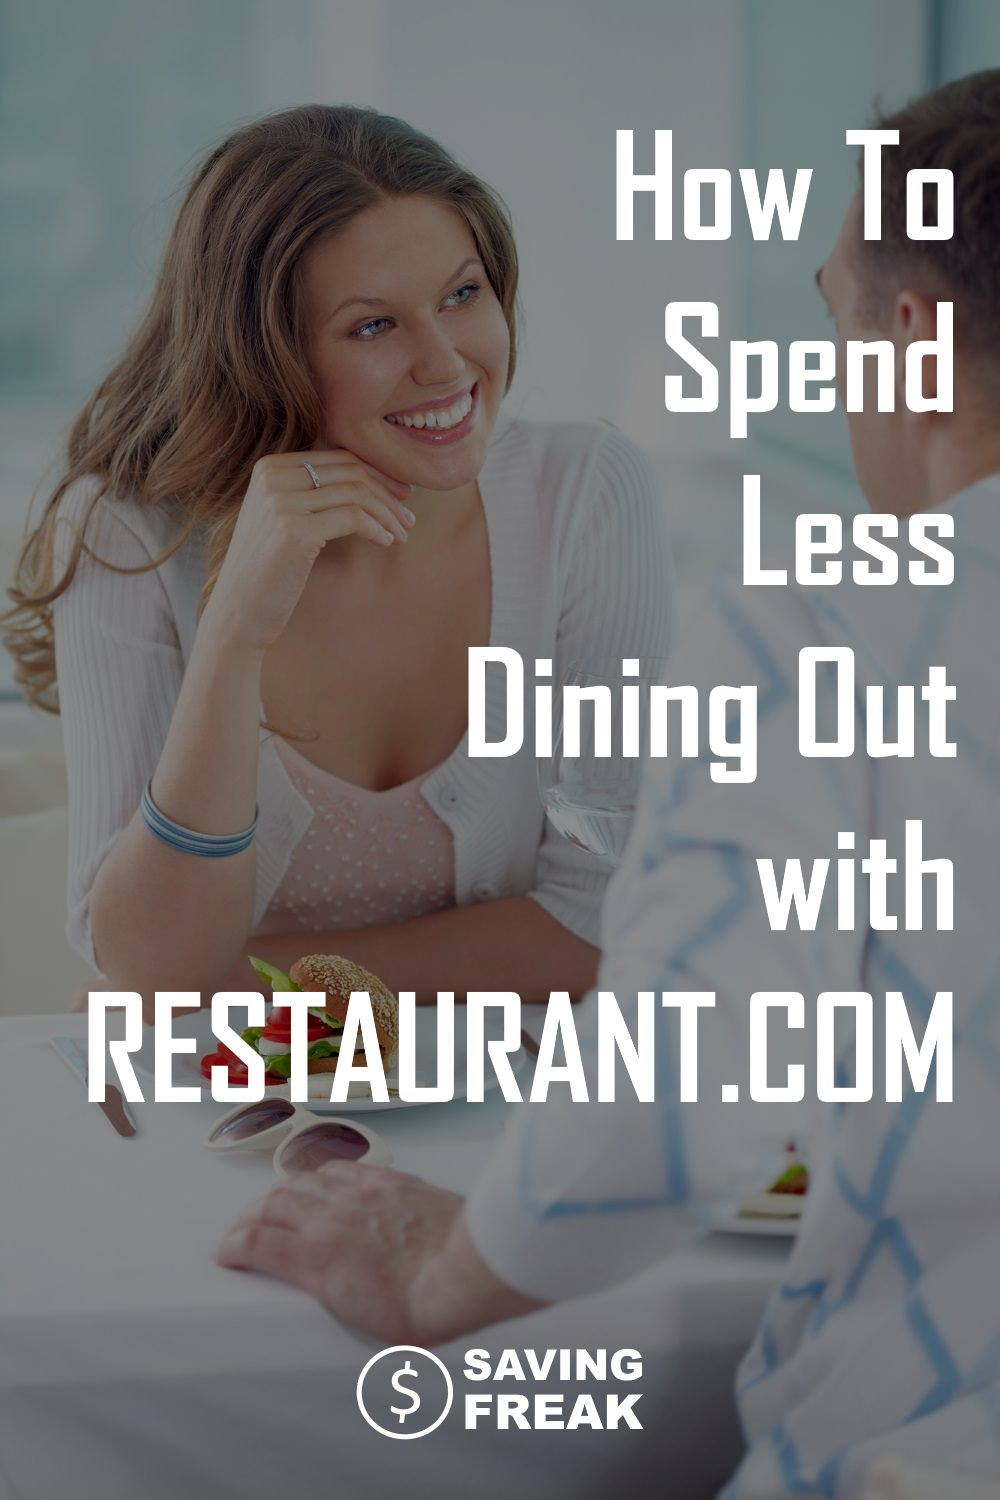 Restaurant.com can save you a bundle on dining out, but you can save even more money by using the strategies in this restaurant.com review.